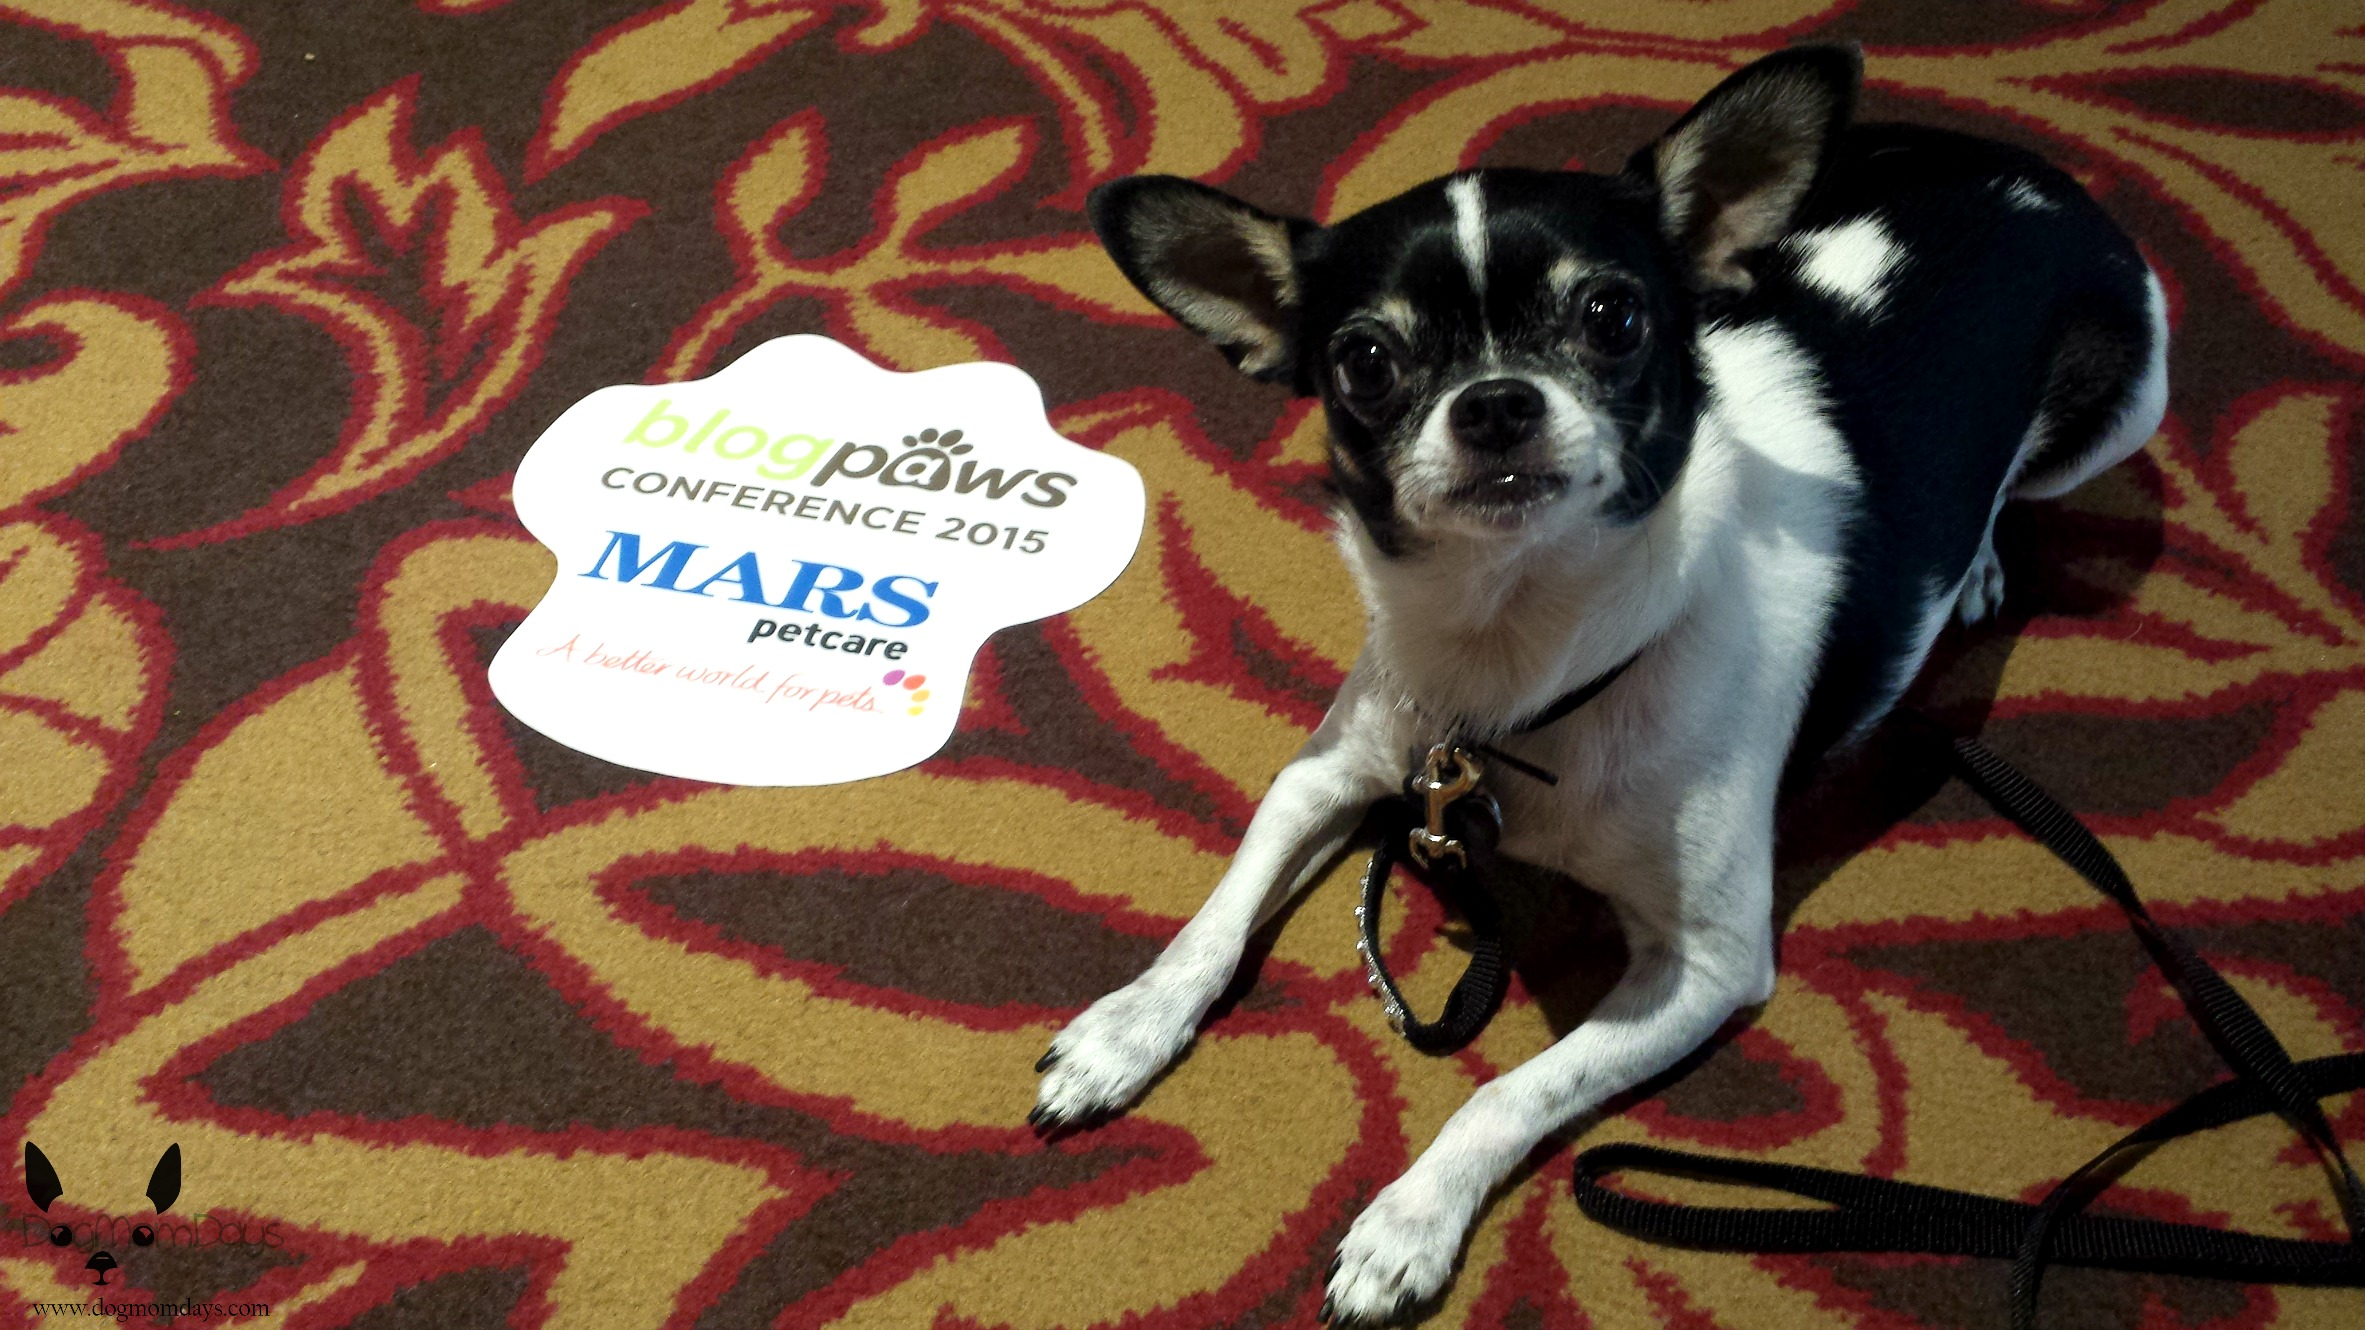 Wynston on the hotel floor next to BlogPaws paw prints!